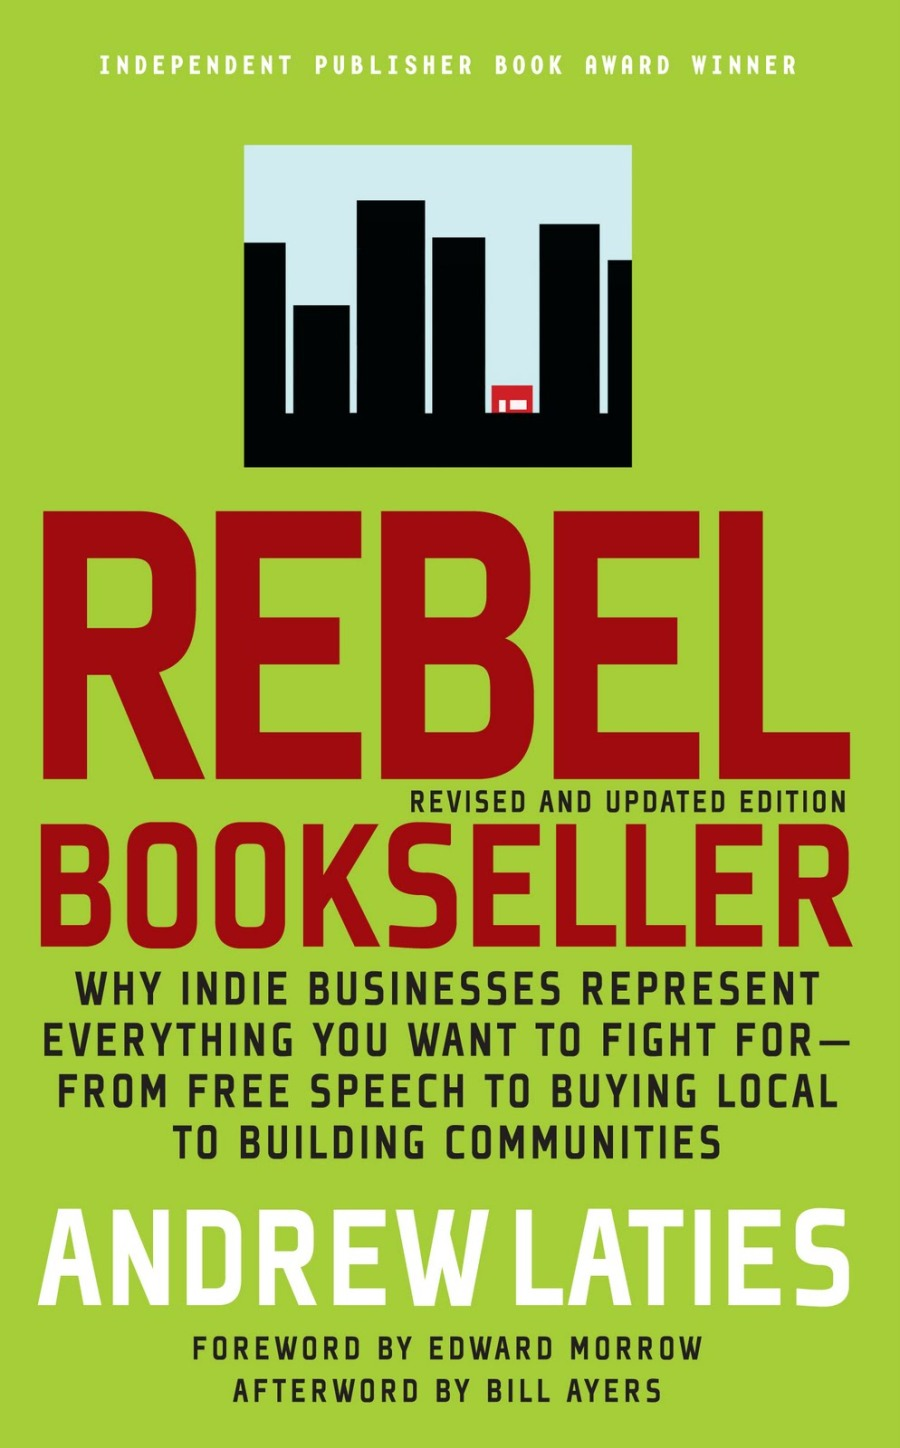 "Bright green book cover with an image of a city skyline with a small red building sandwiched between skyscrapers. Red text reads: ""Rebel Bookseller by Andrew Laties. Why indie businesses represent everything you want to fight for, from free speech to buying local, to building communities."